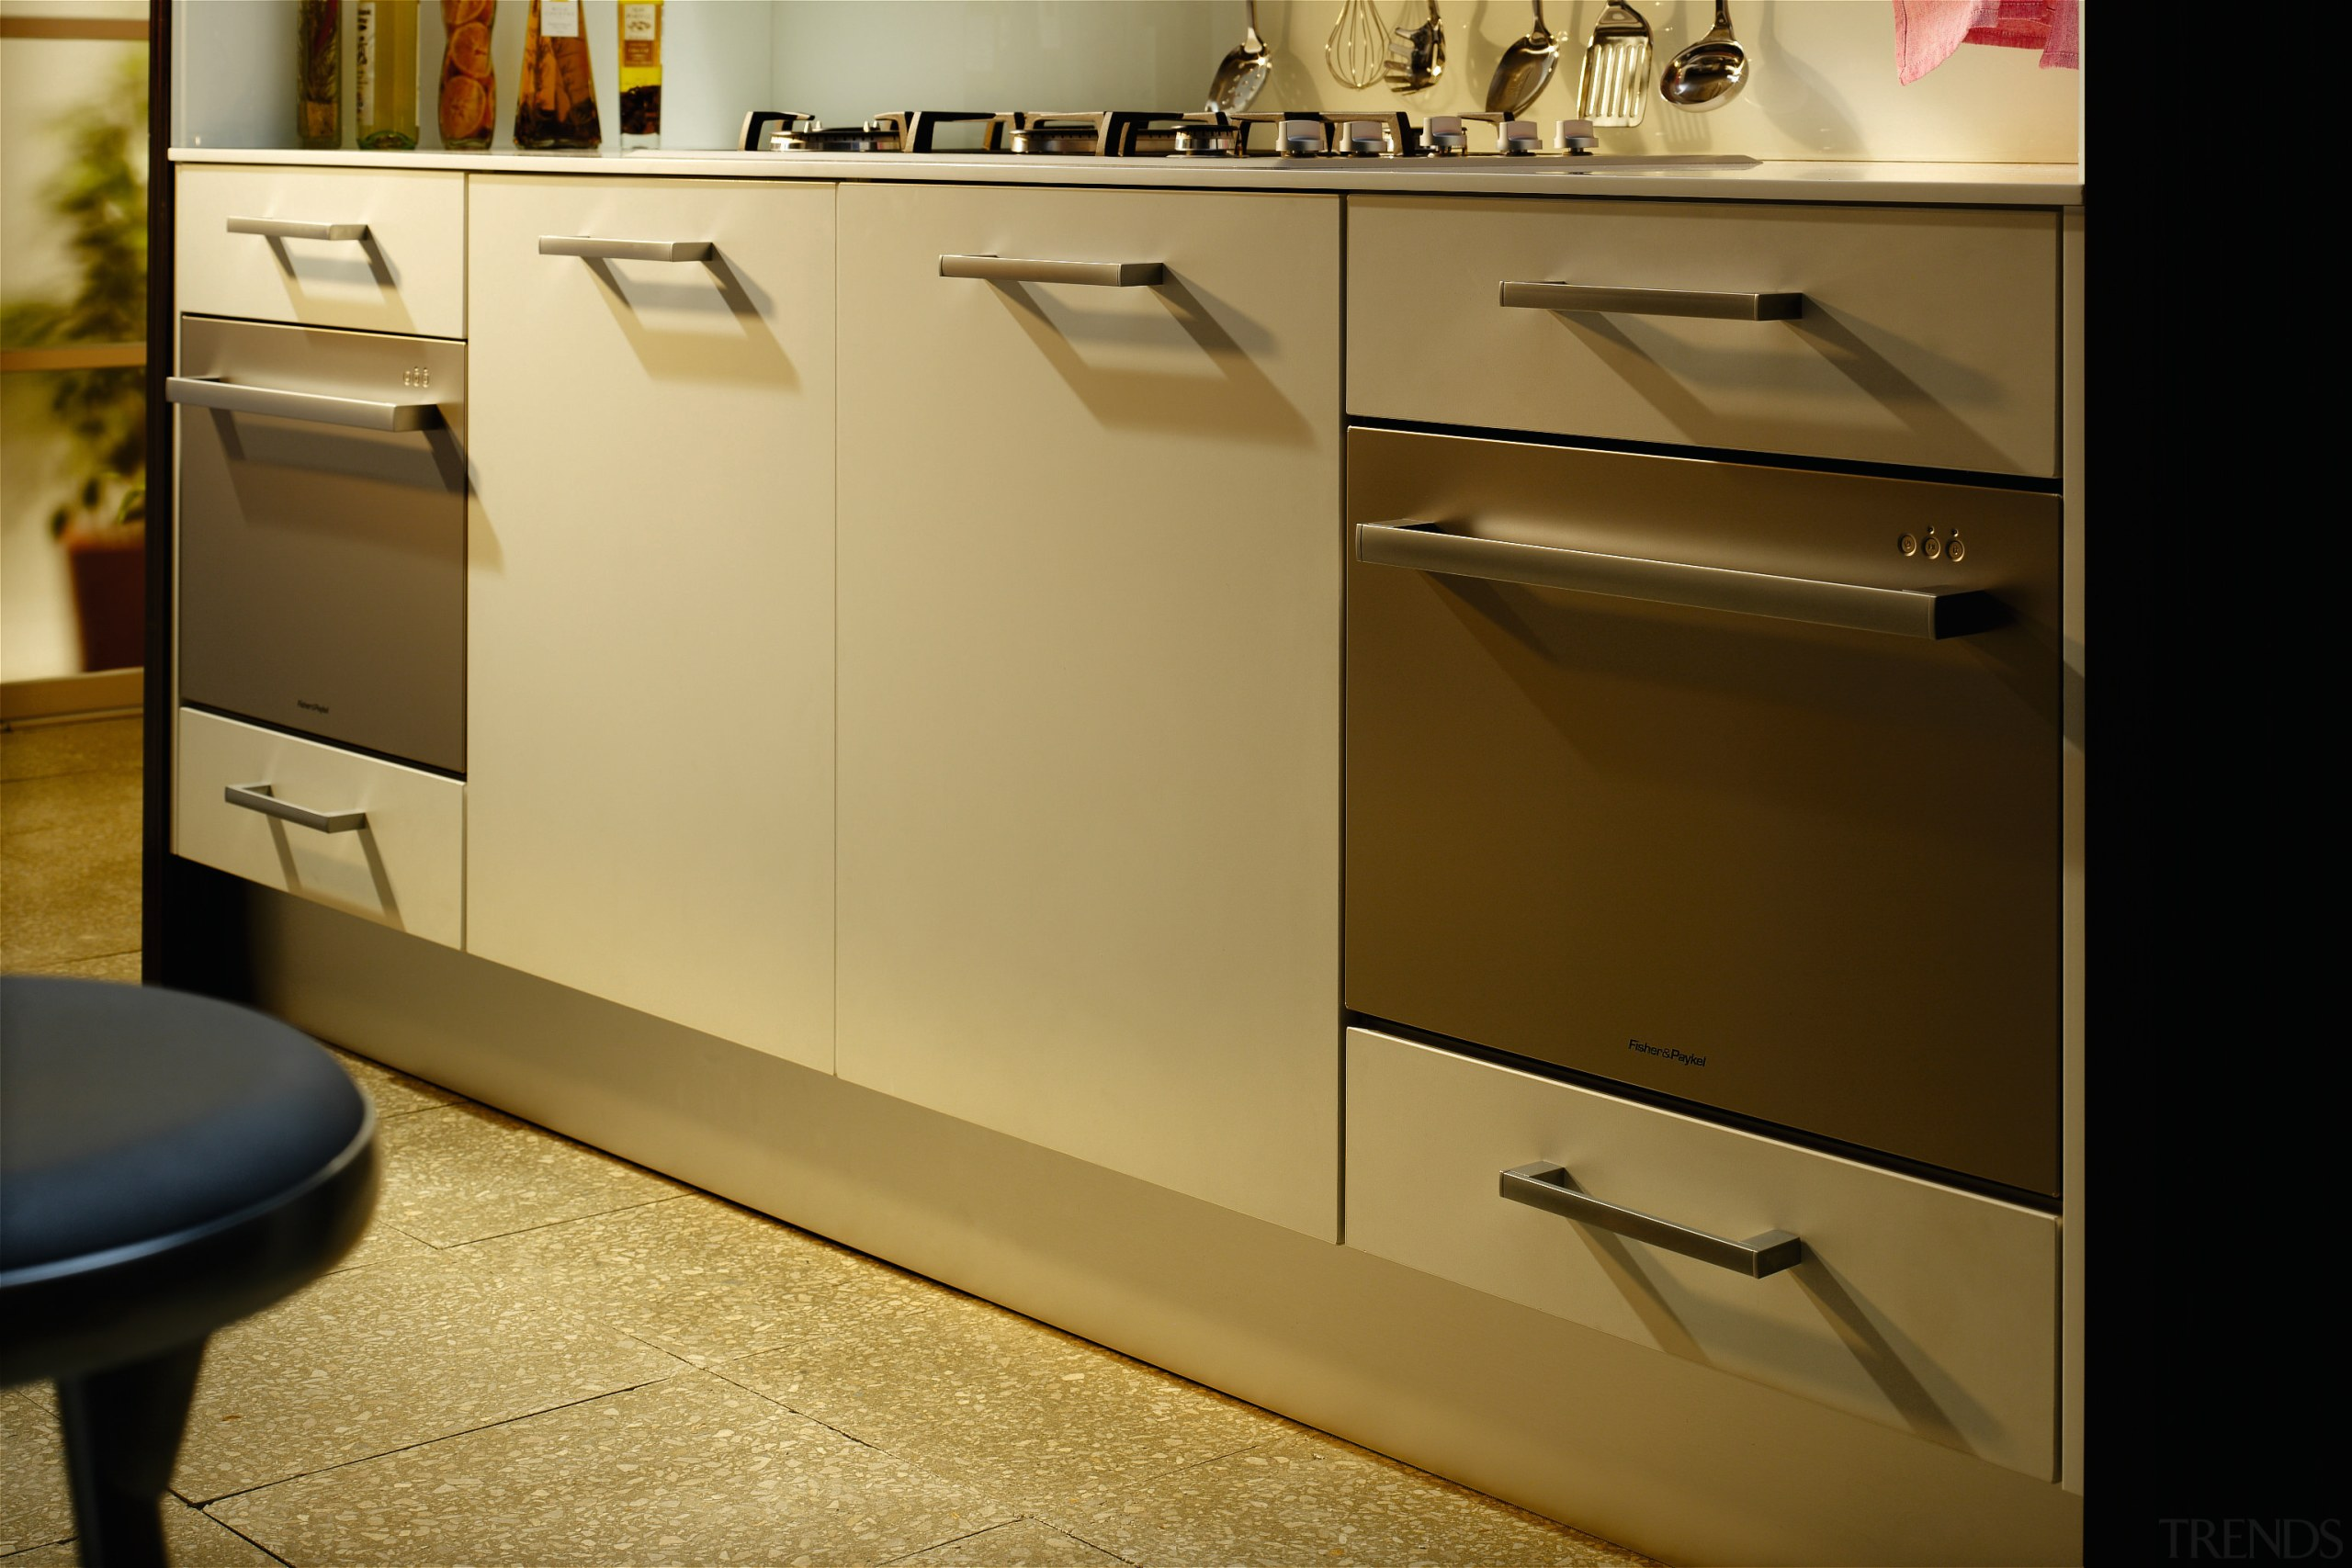 Examples of the new Fisher & Paykel technology cabinetry, chest of drawers, countertop, drawer, floor, flooring, furniture, home appliance, kitchen, product, product design, sideboard, brown, orange